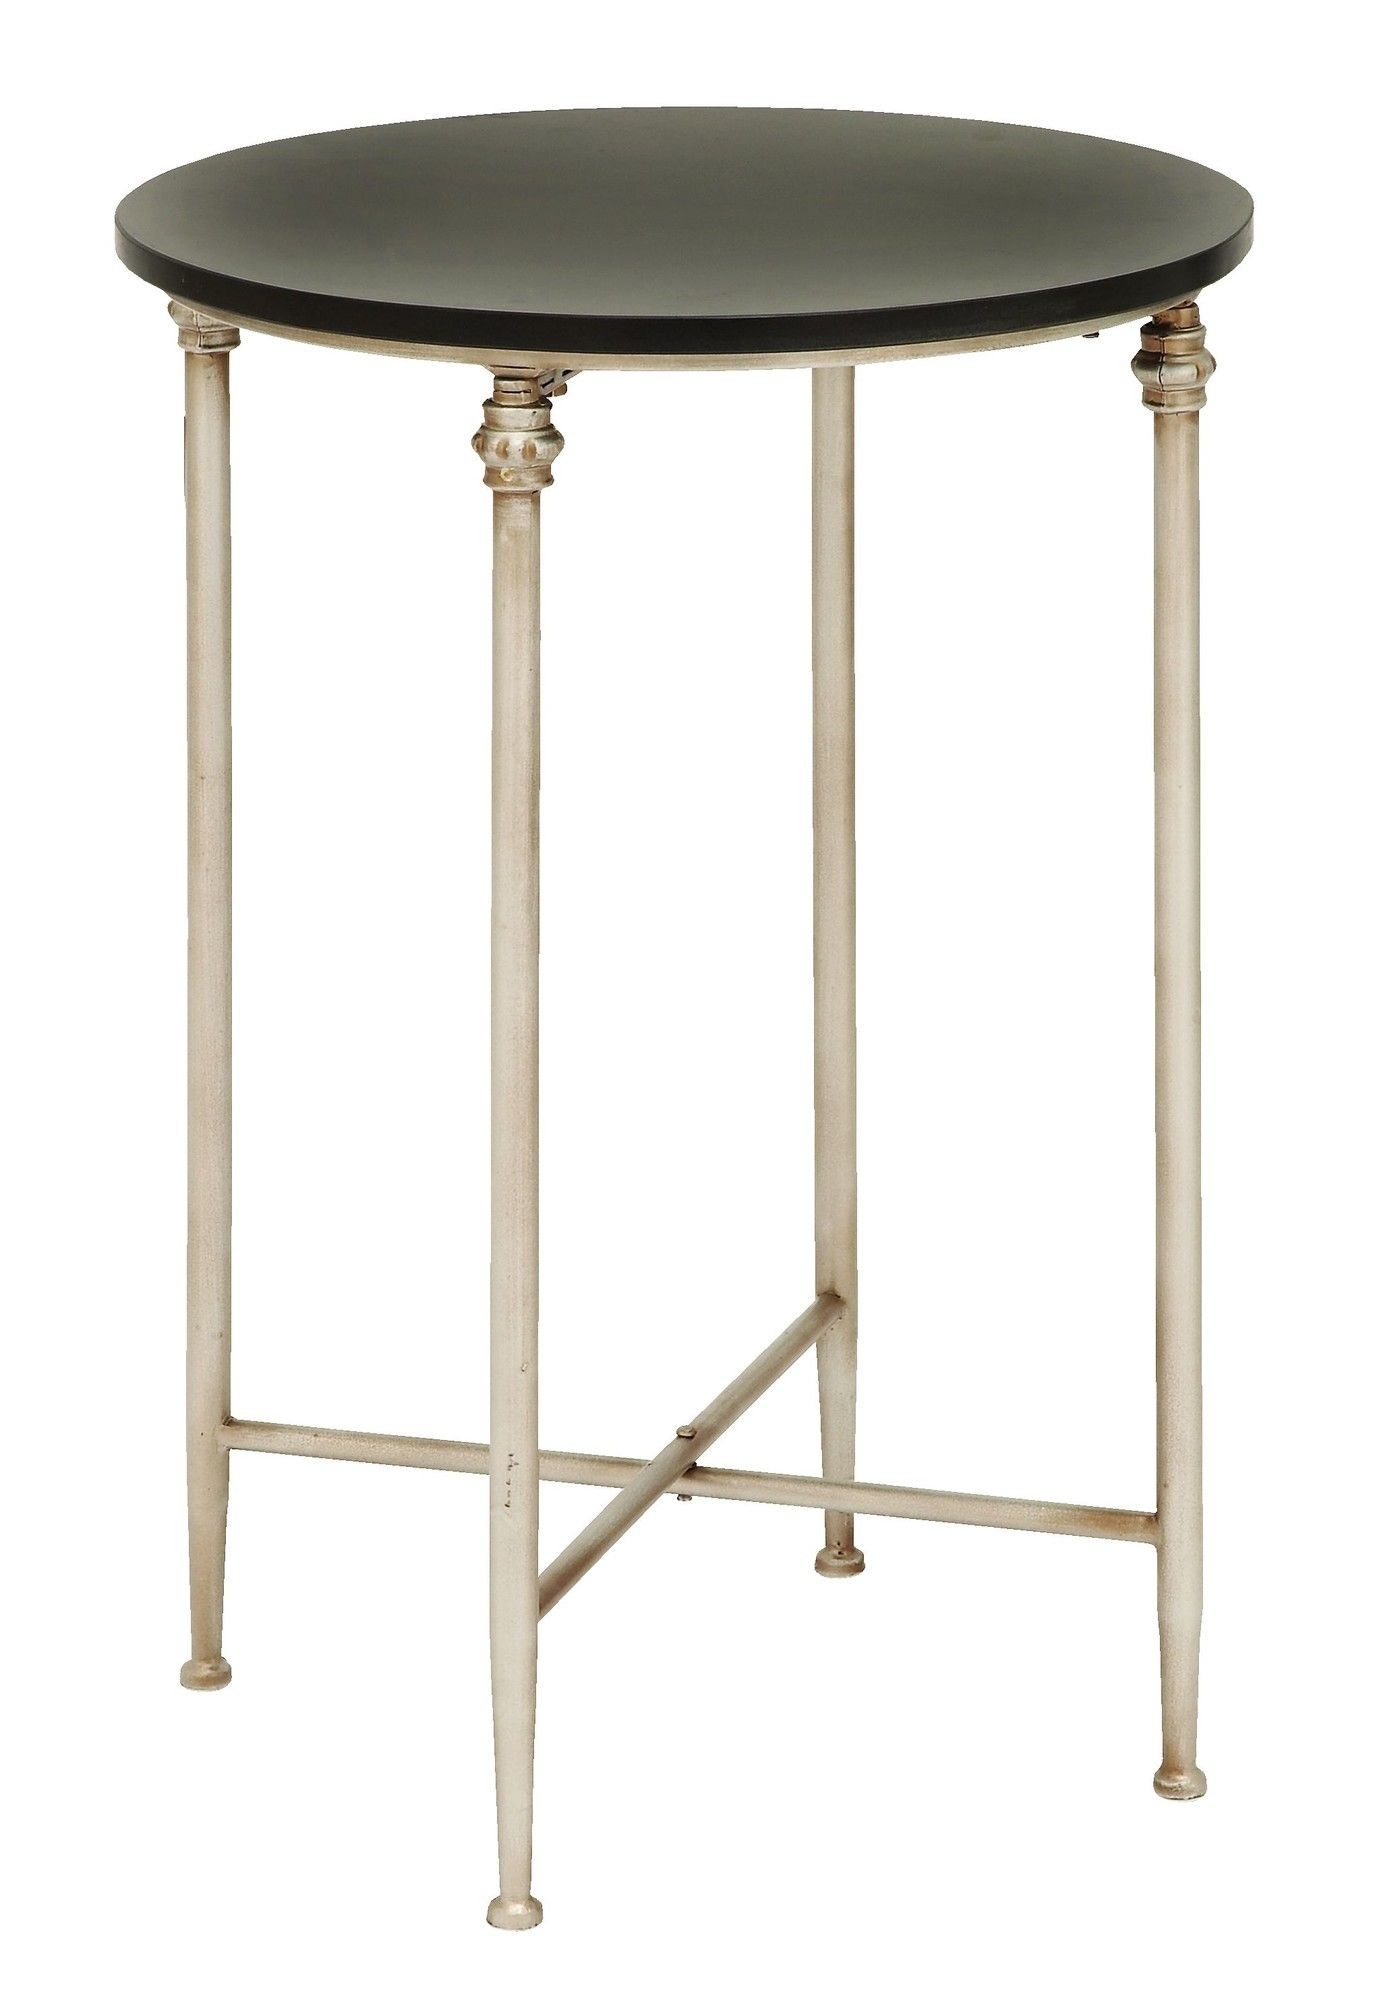 Woodland Imports Old Look End Table & Reviews Wayfair $84